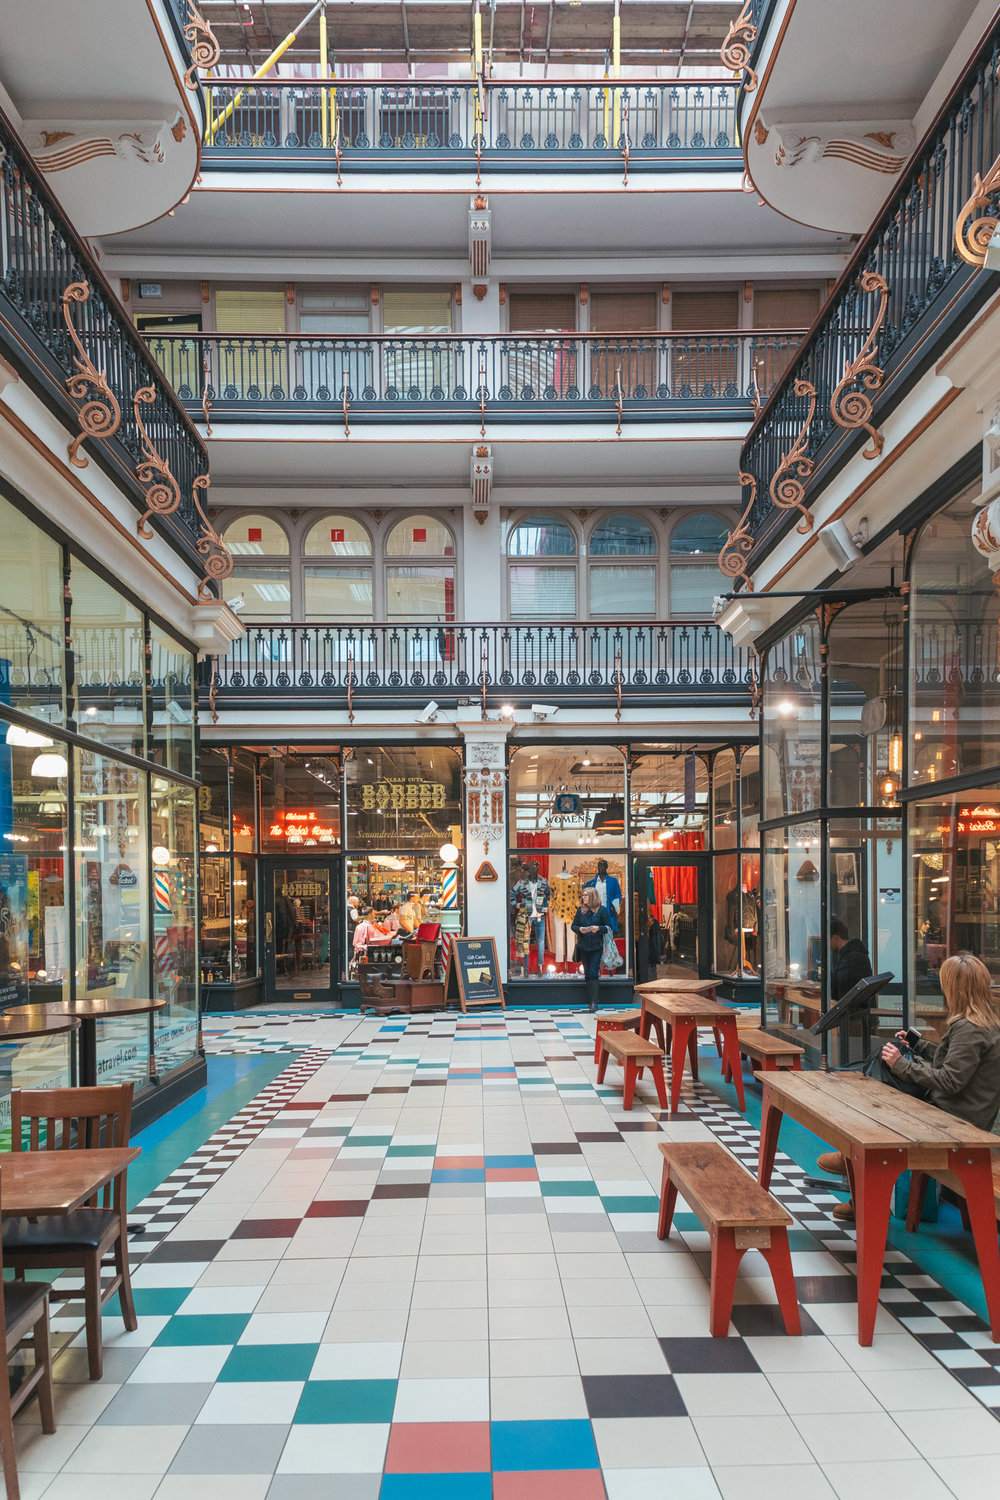 Barton Arcade in Manchester // 11 INSTAGRAM-WORTHY PHOTO SPOTS IN MANCHESTER, ENGLAND // www.readysetjetset.net #readysetjetset #manchester #england #uk #unitedkingdom #cityguide #travel